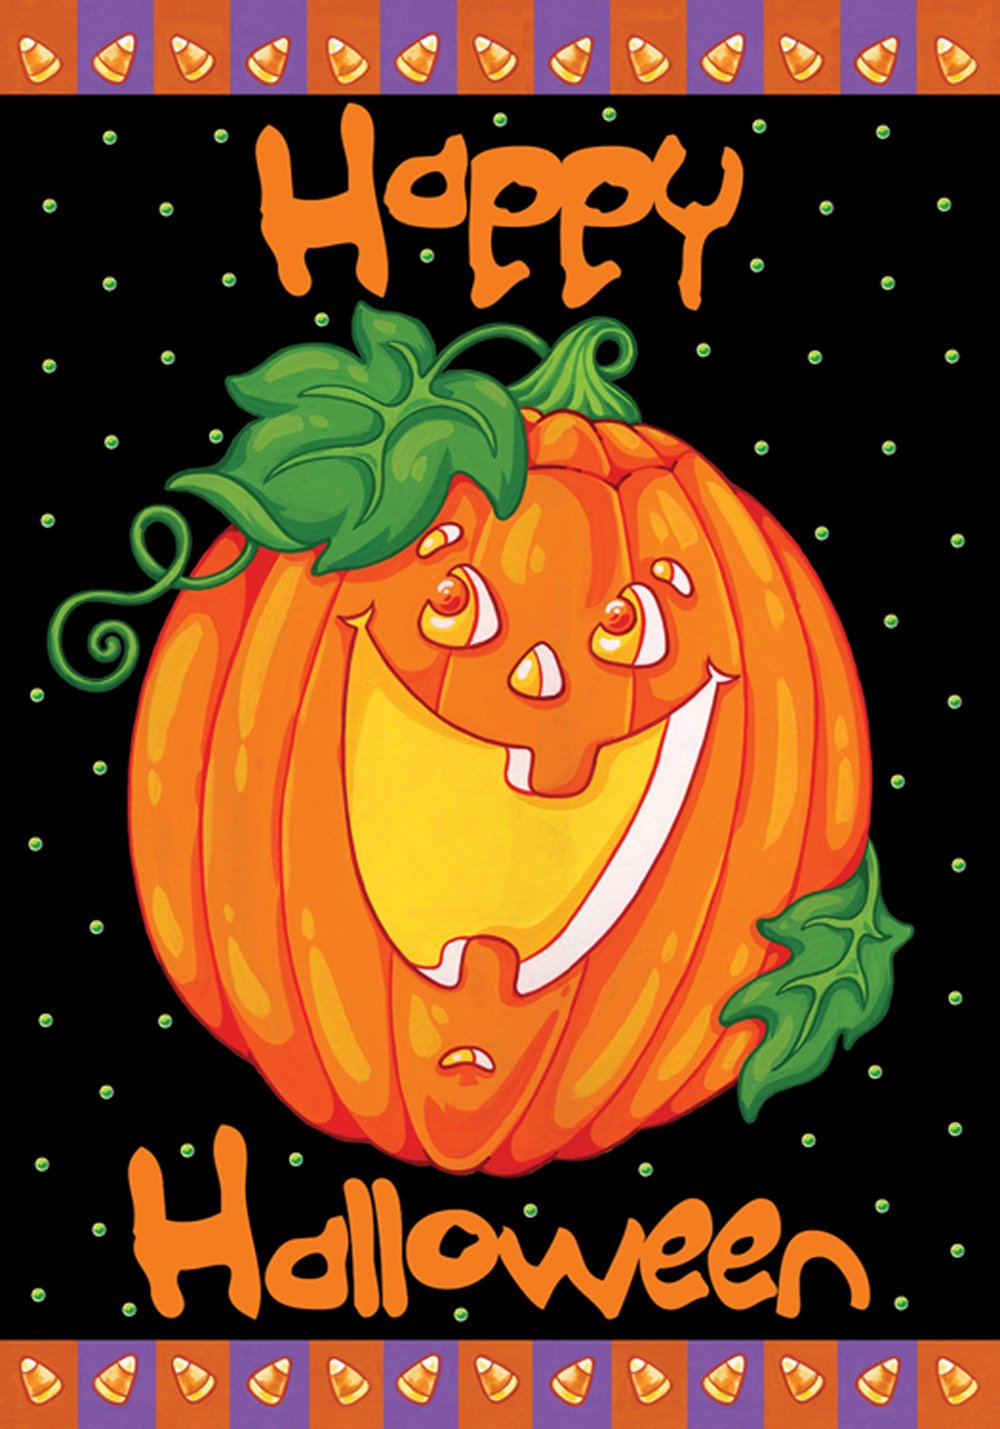 Charmant Amazon.com : Toland Home Garden Happy Halloween 28 X 40 Inch Decorative  Jack O Lantern Pumpkin Candy Corn House Flag : Outdoor Flags : Garden U0026  Outdoor